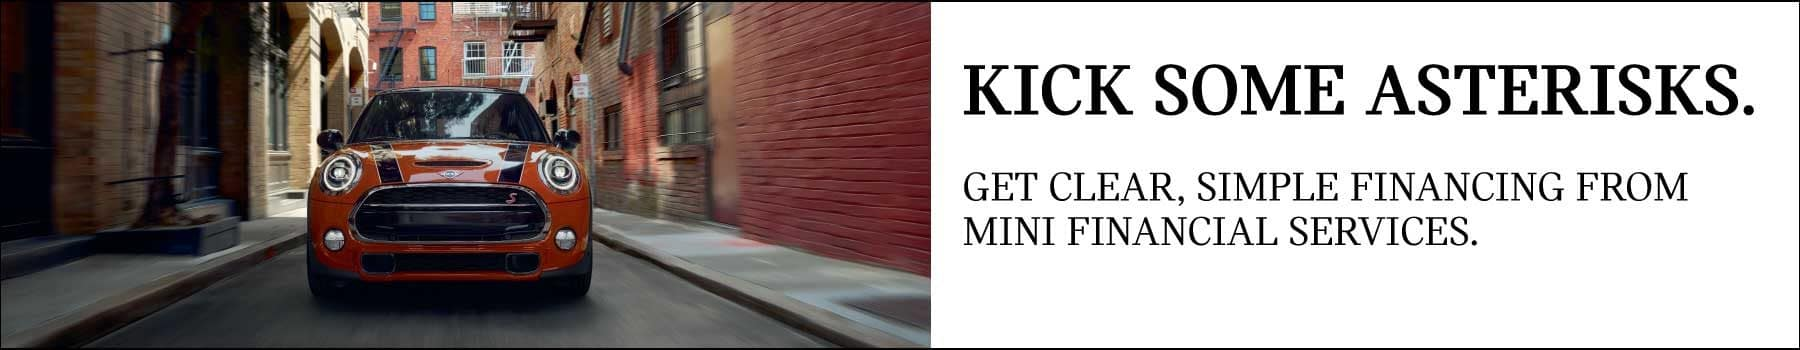 Kick some Asterisks. Get clear, simple financing from MINI Financial services. Red MIN Cooper S Hardtop 4 door driving down city alley.